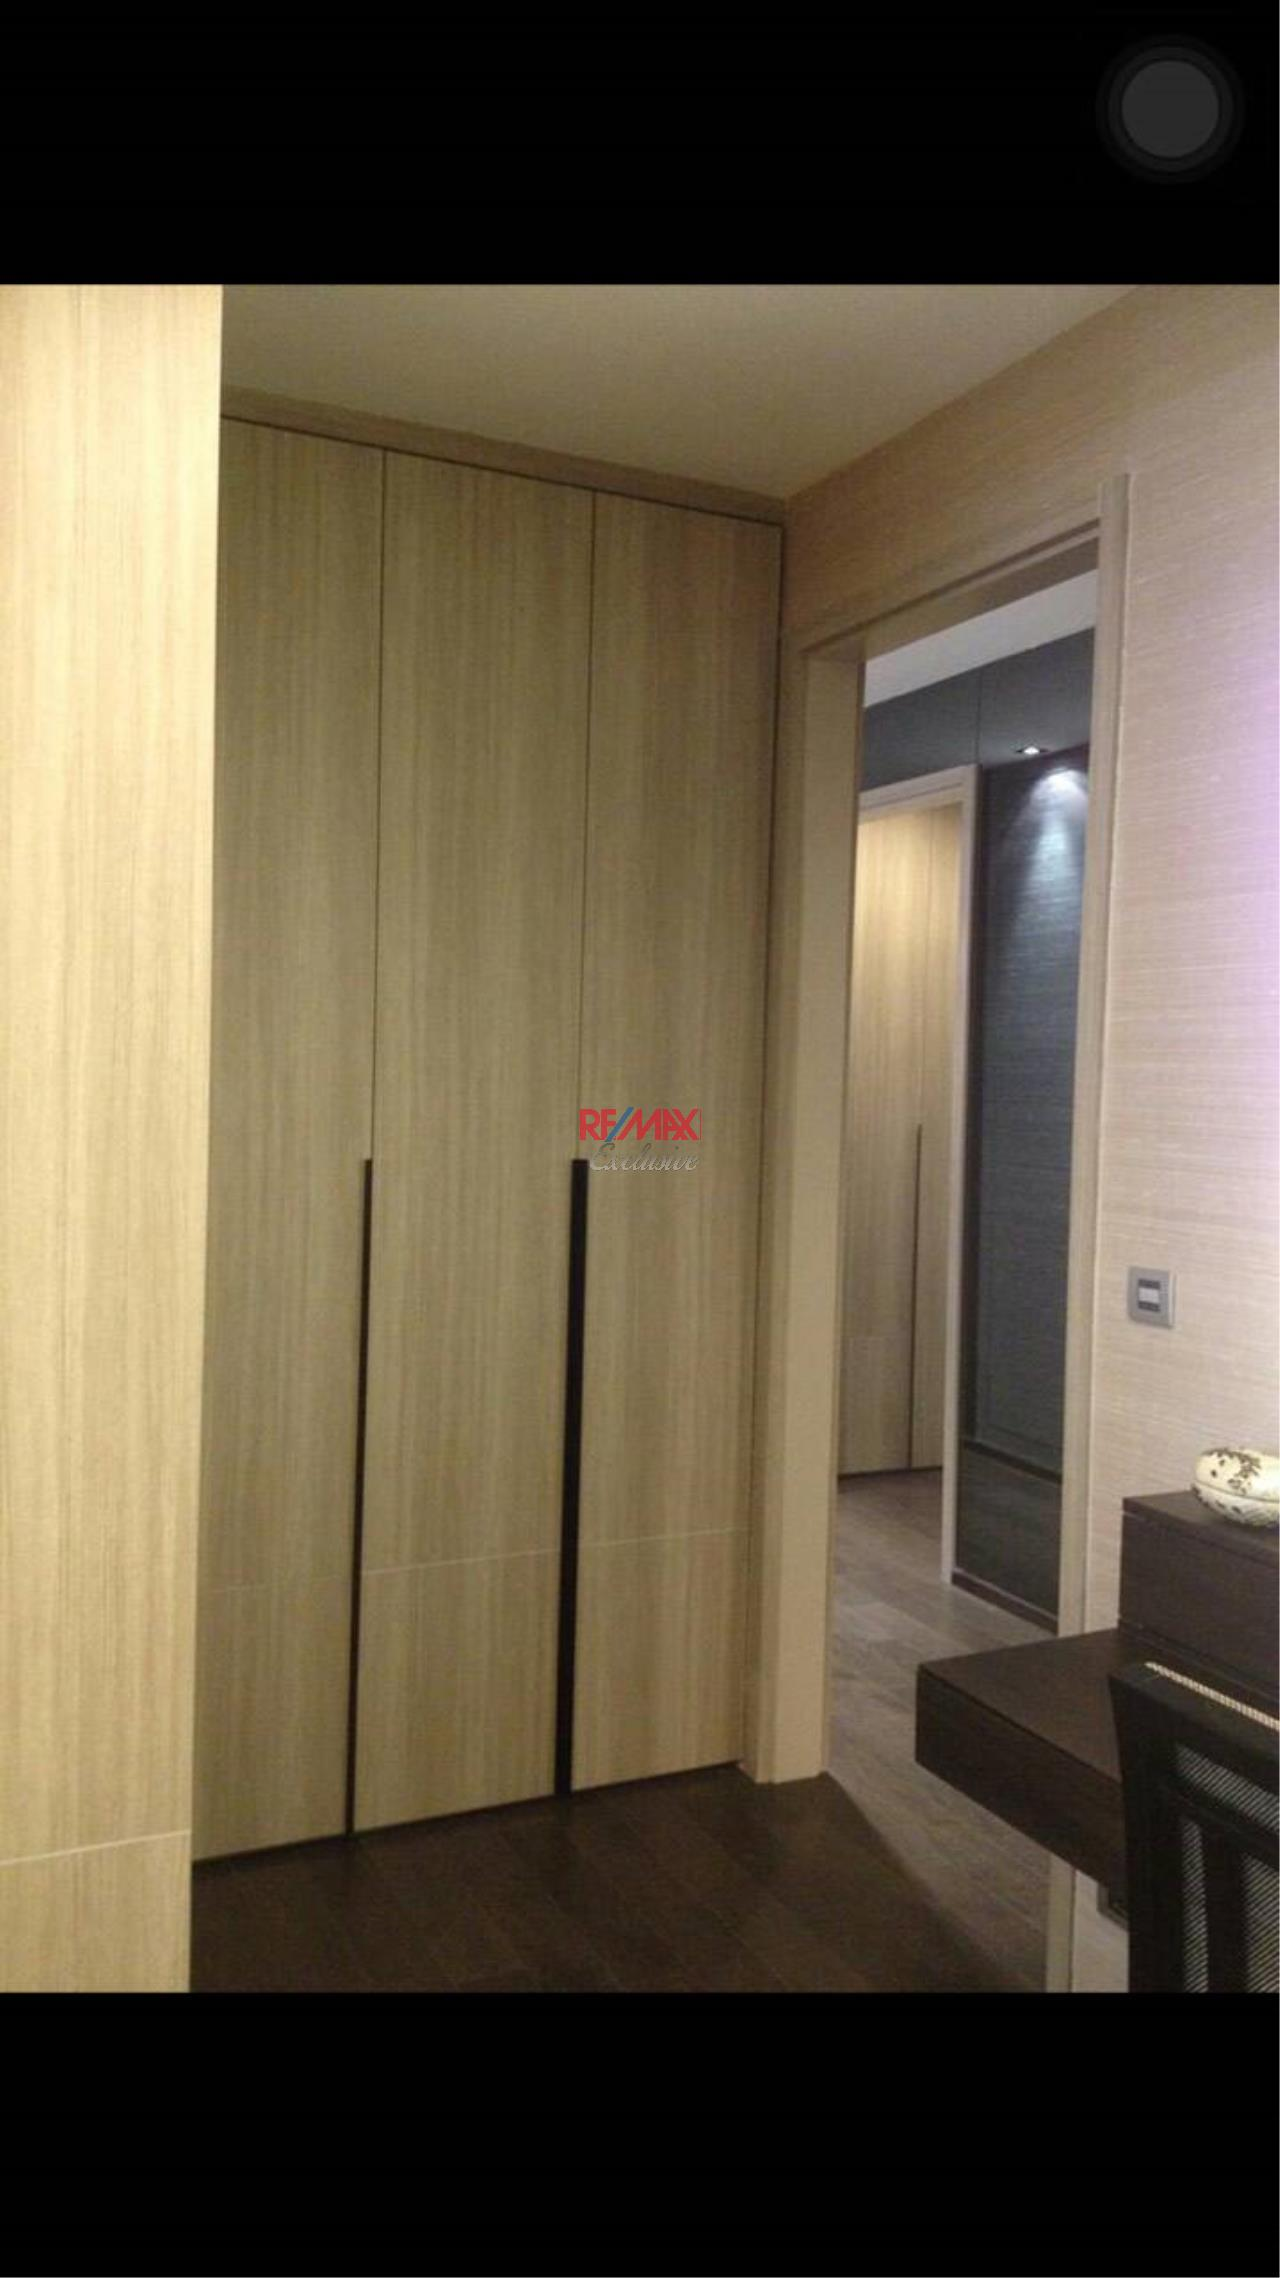 RE/MAX Exclusive Agency's The XXXIX By Sansiri 1 Bedroom For Sale with Tenant 15,200,000 THB!! 6